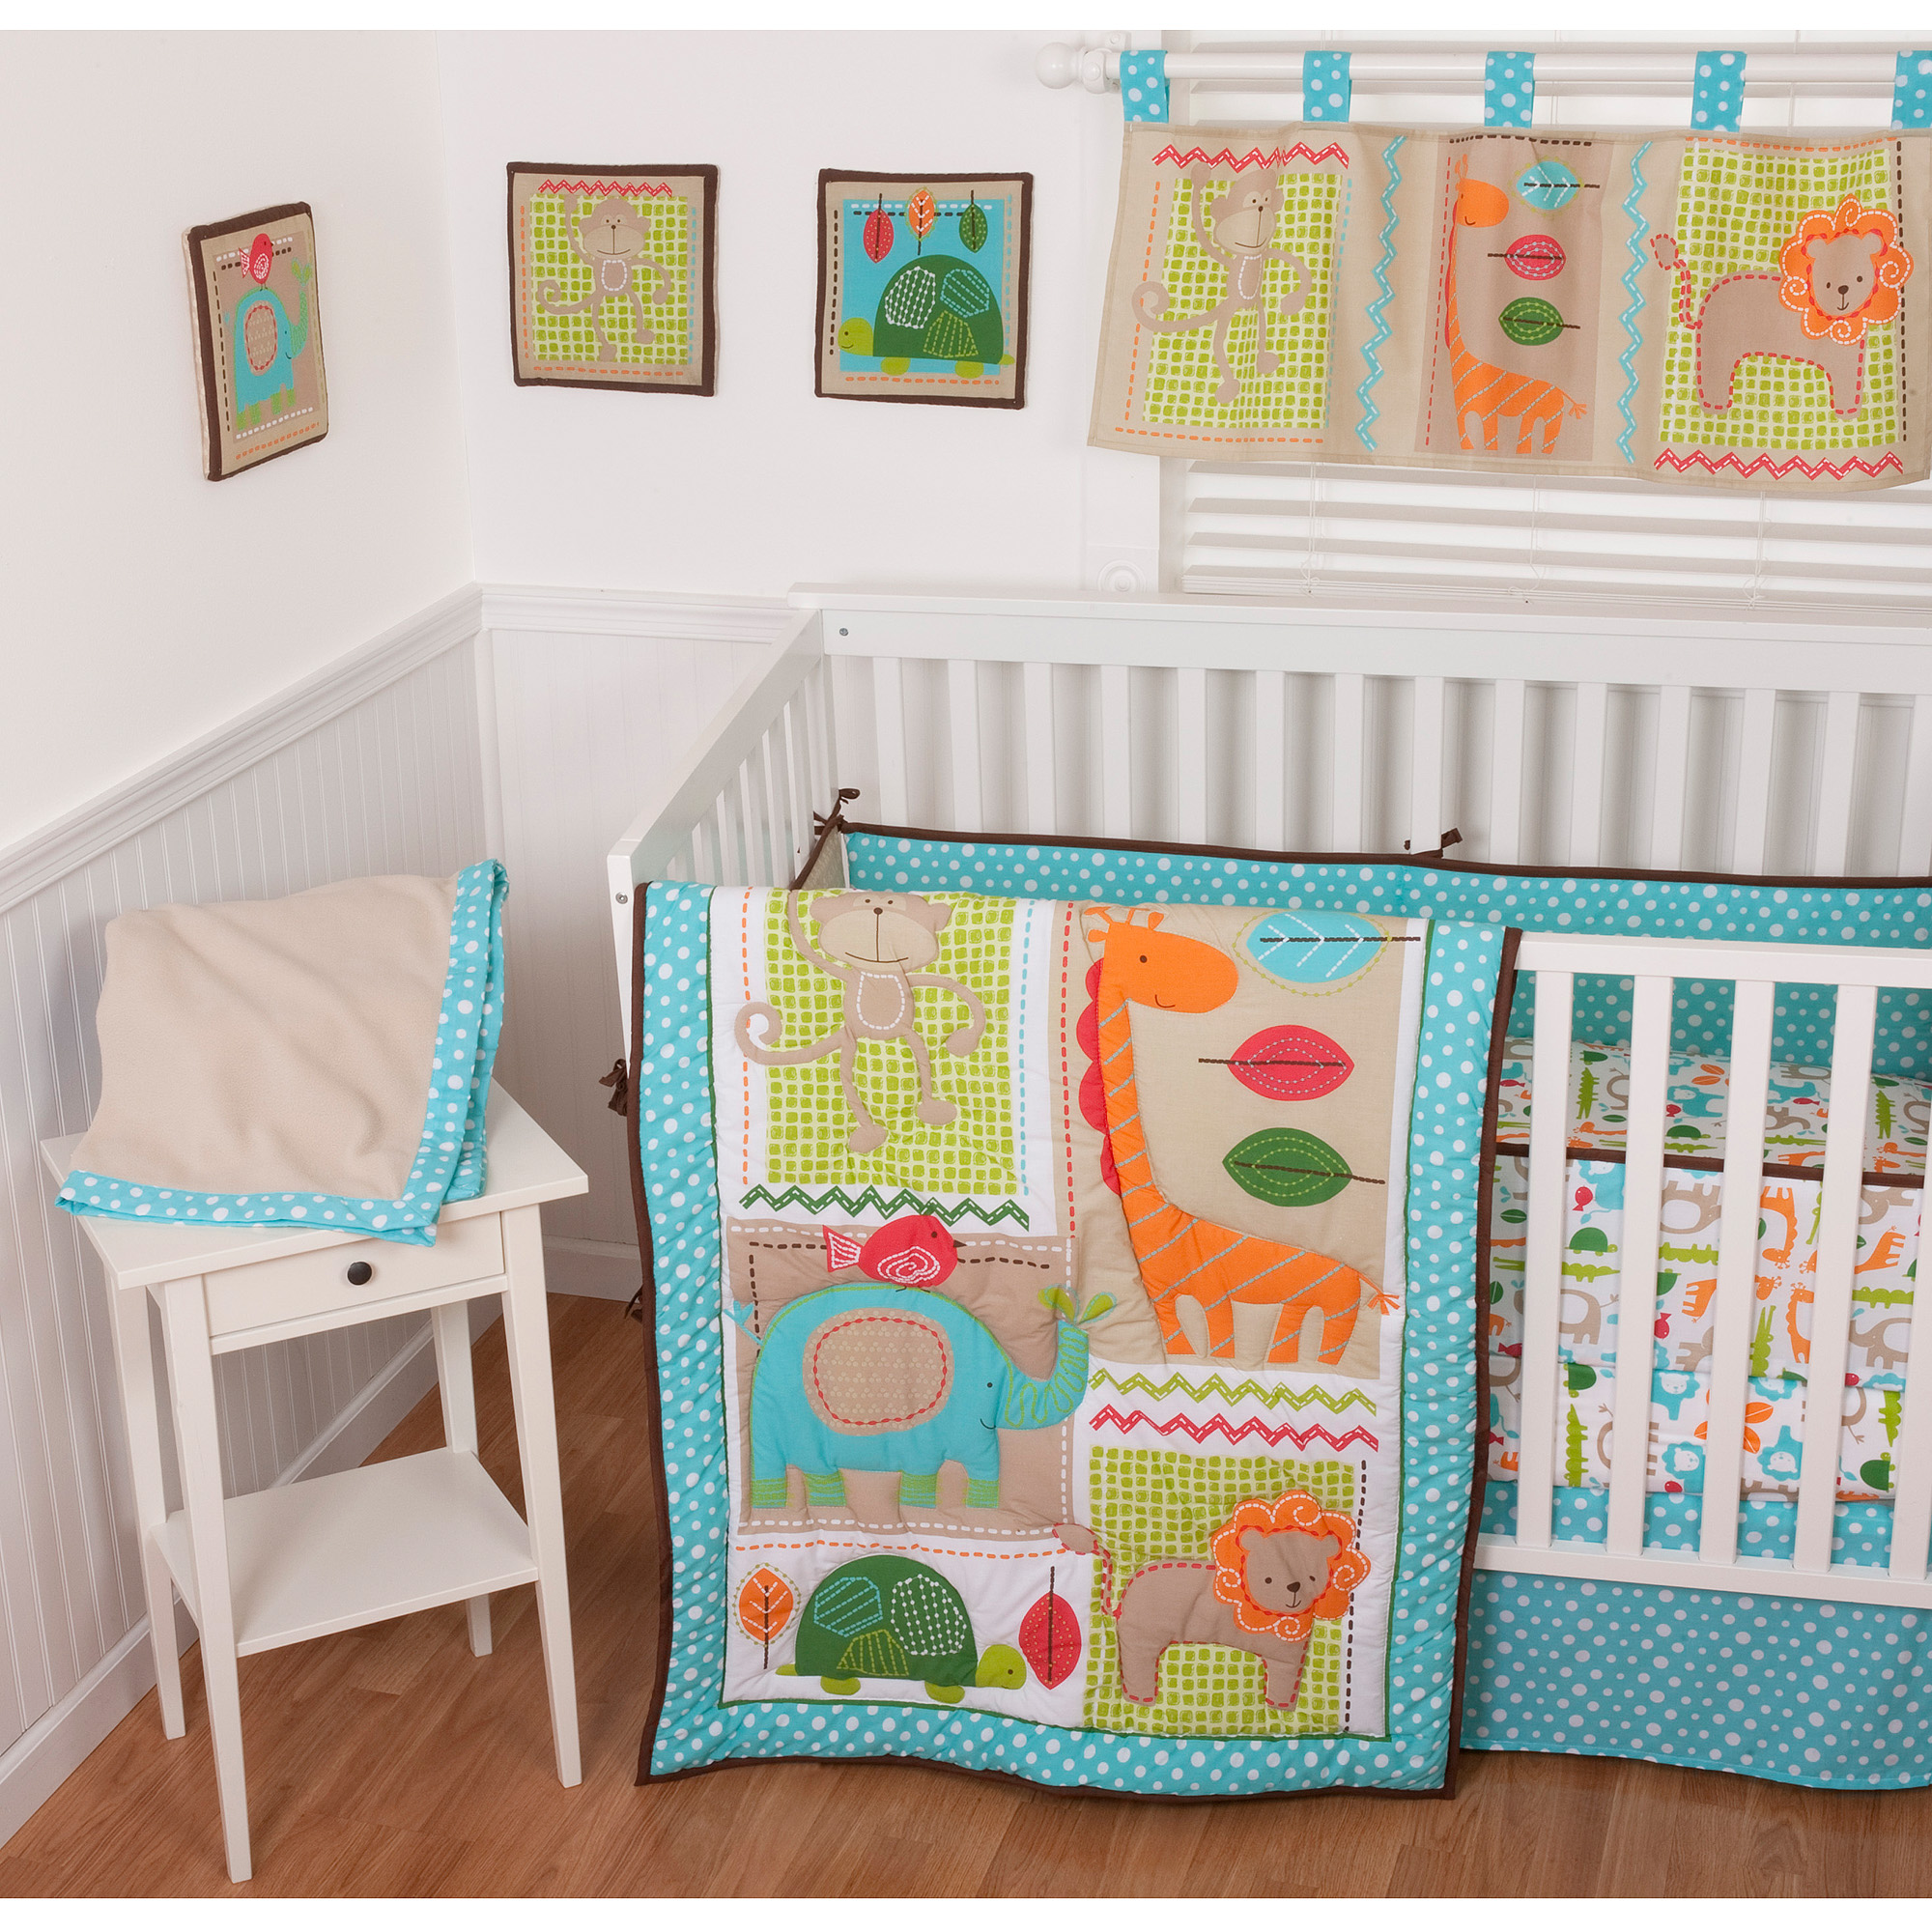 Sumersault Jungle Dance 9-Piece Nursery in a Bag Crib Bedding Set with BONUS Bumper